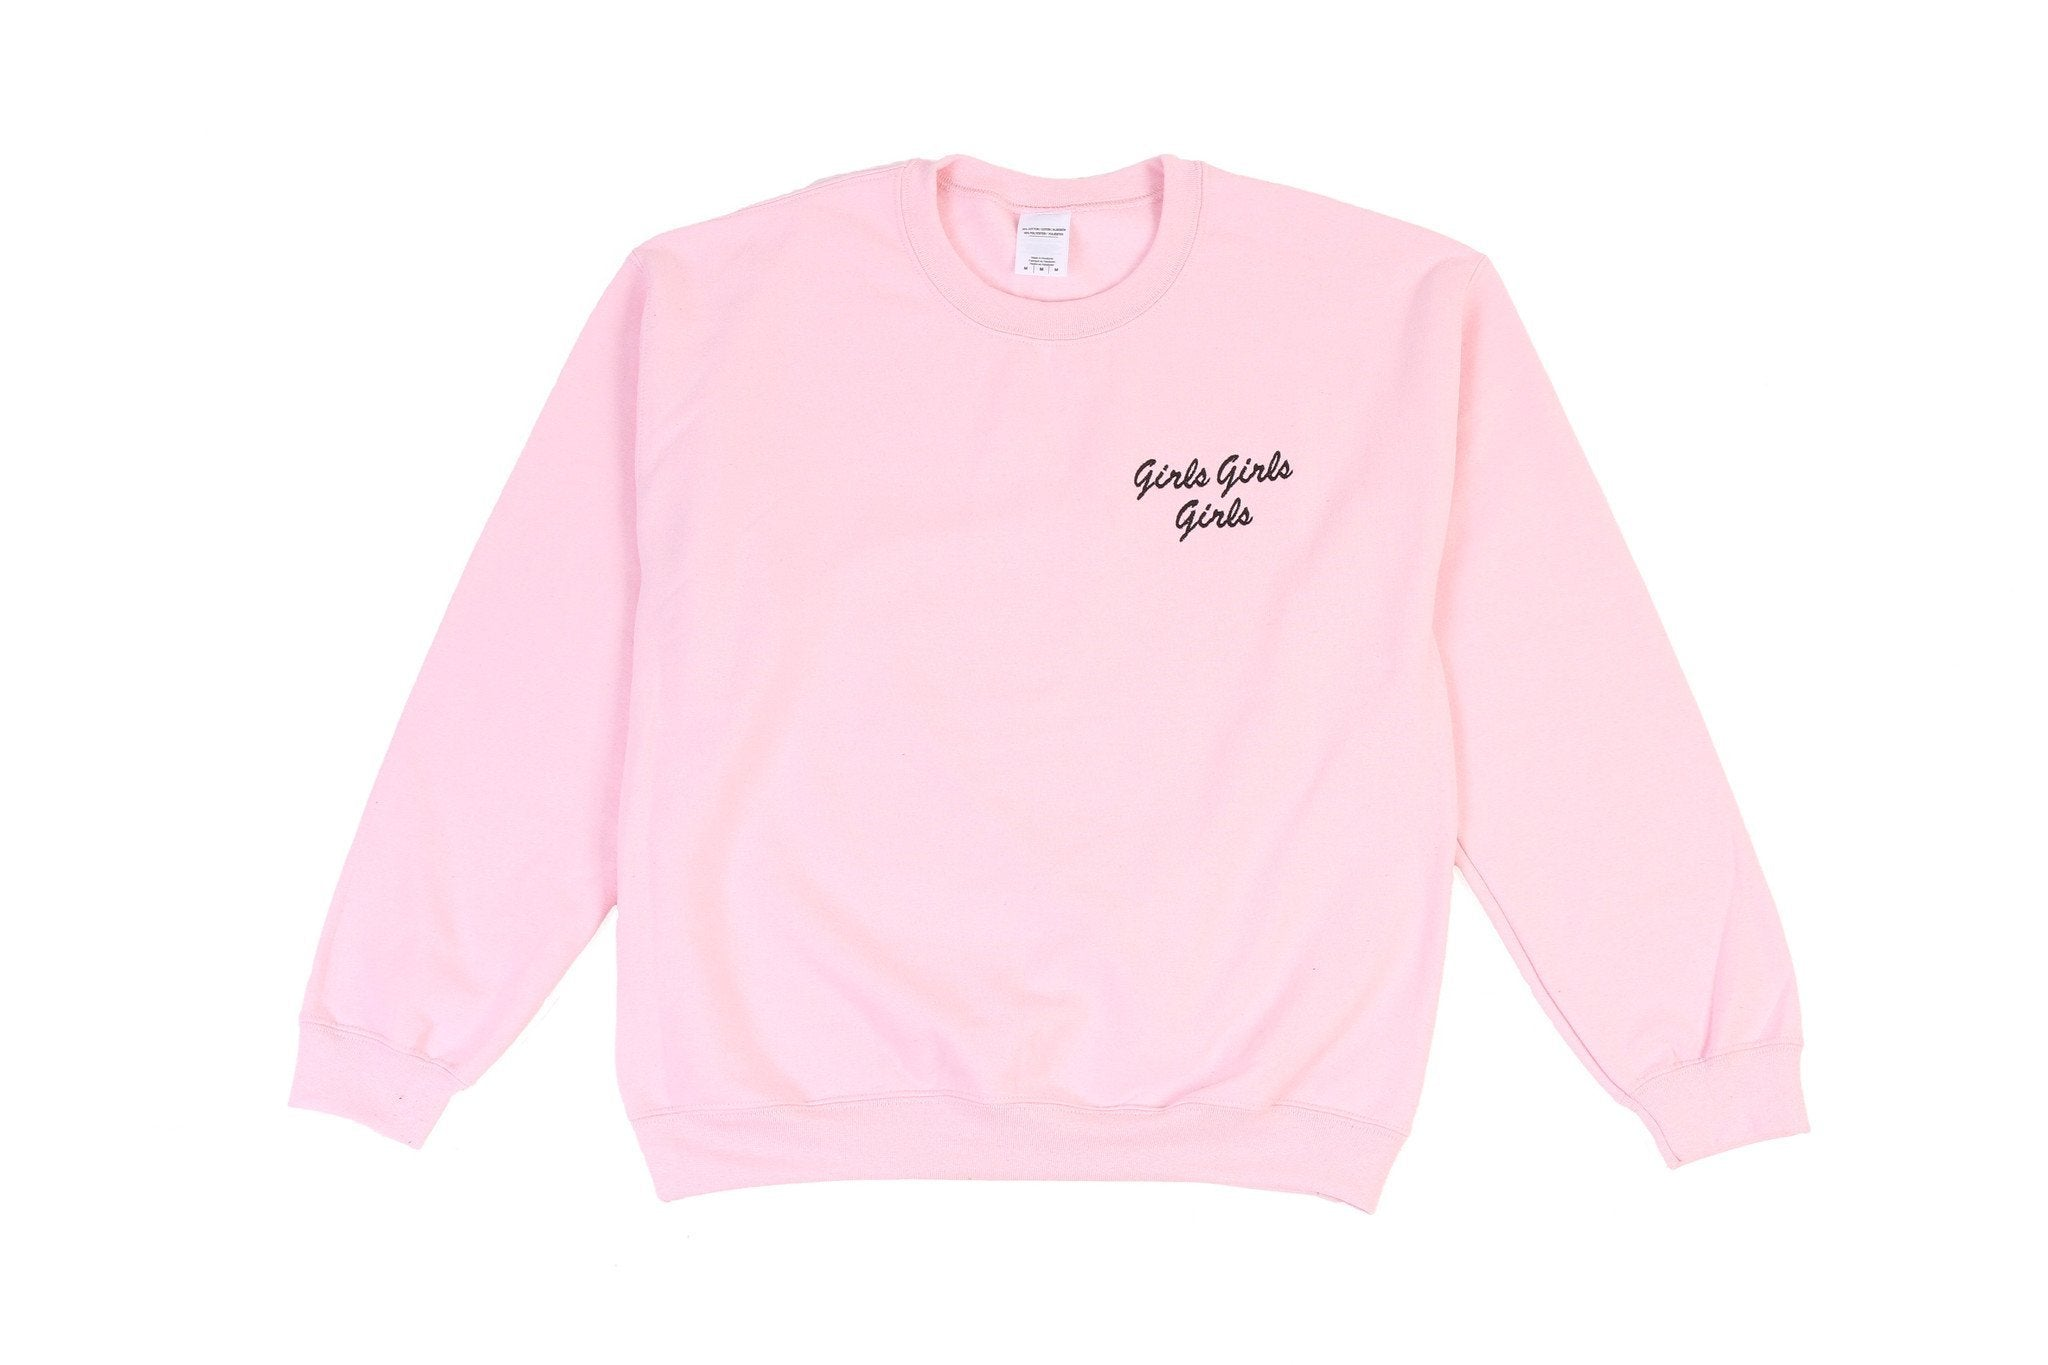 Double Trouble Gang 'Girls Girls Girls' Embroidered Jumper - THENINETYNINE